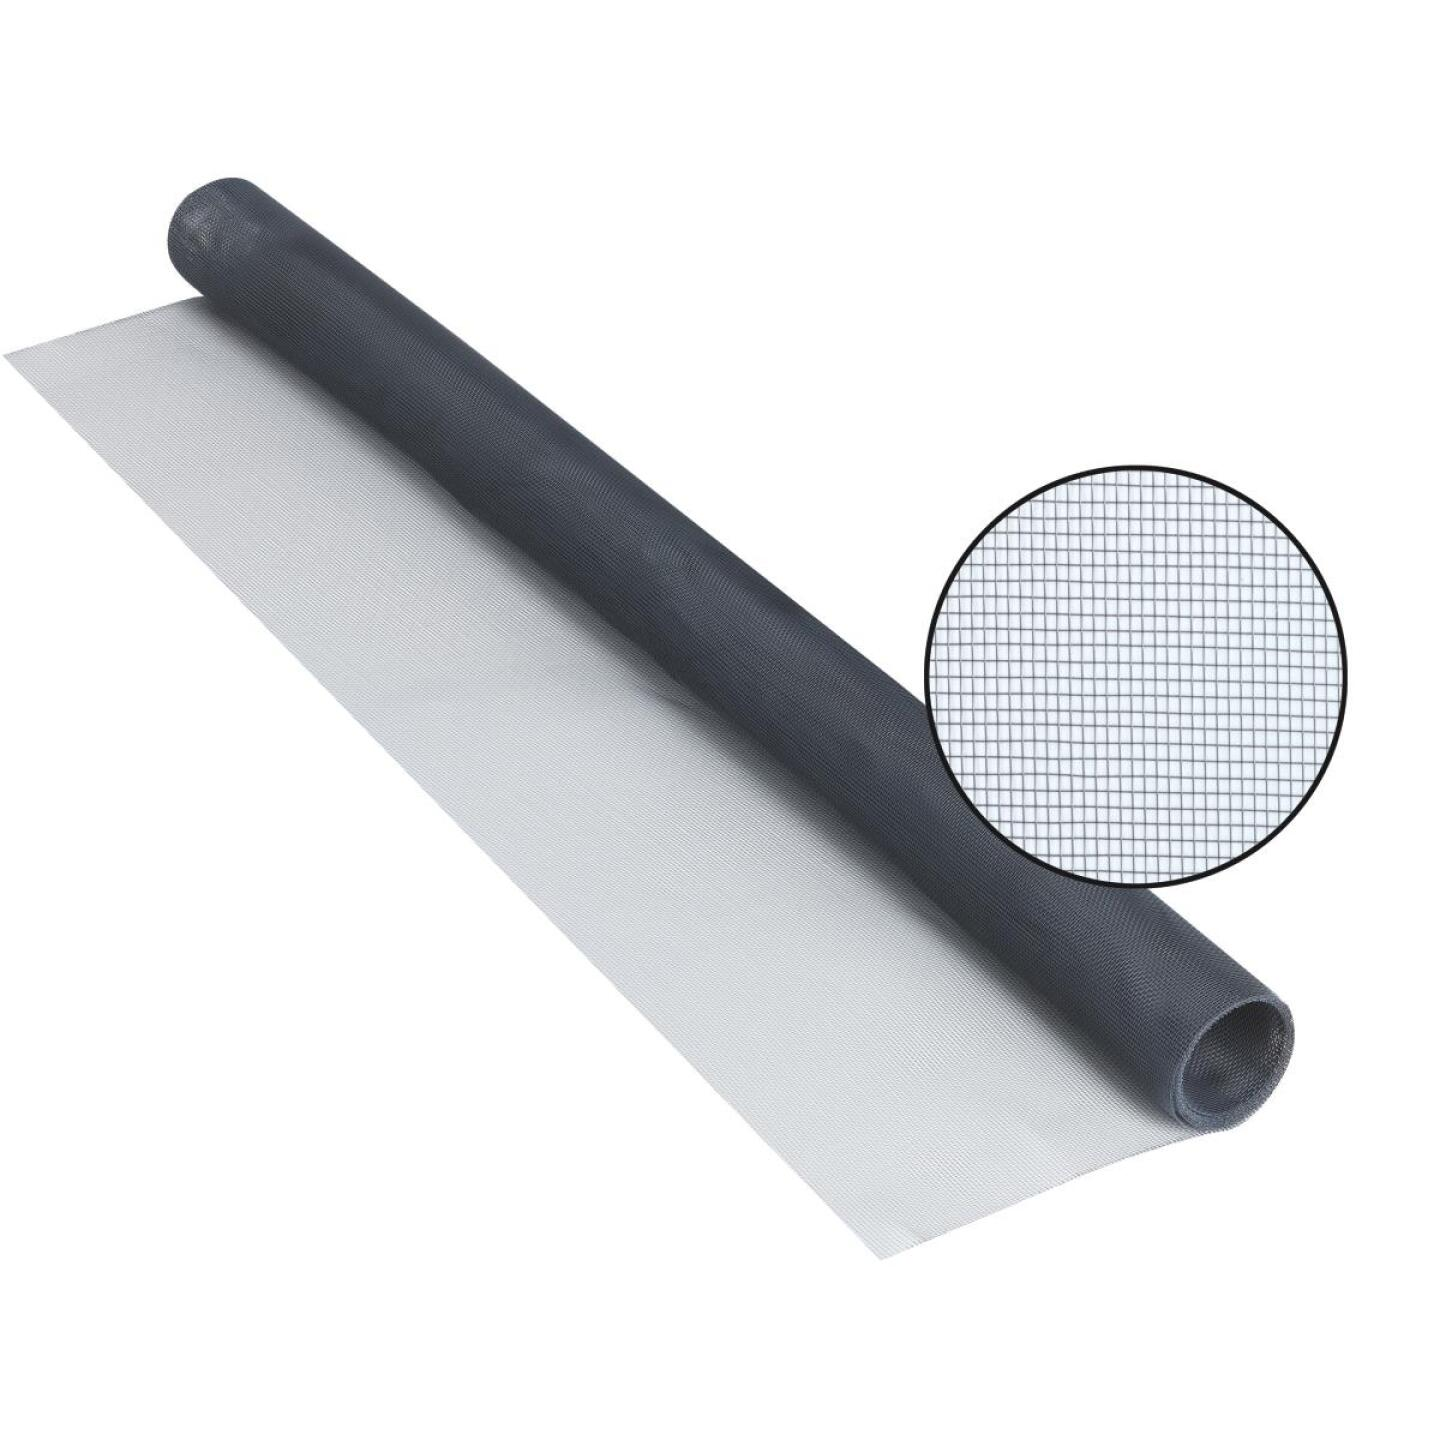 Phifer 48 In. x 84 In. Charcoal Aluminum Screen Ready Rolls Image 1